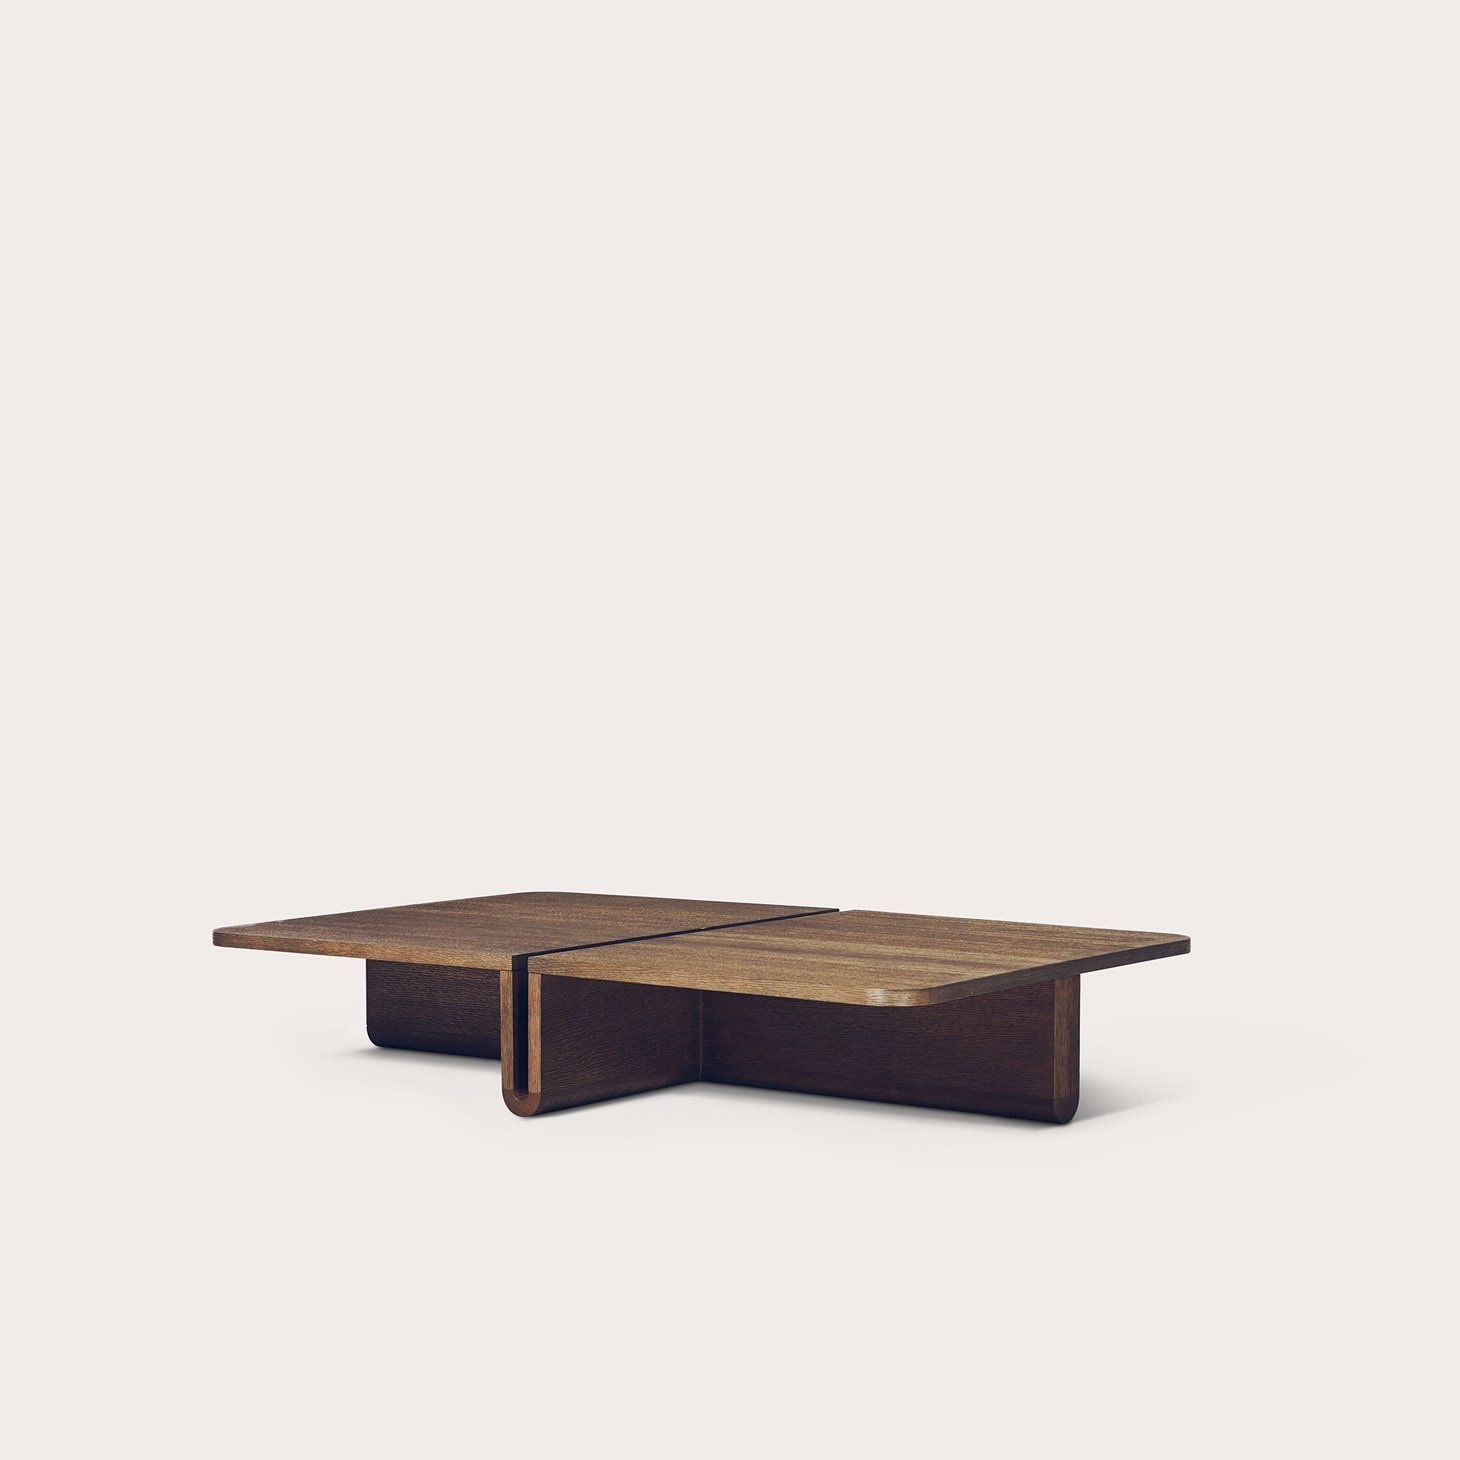 Dup Coffee Table Table Top Design Sophisticated Furniture [ 1460 x 1460 Pixel ]